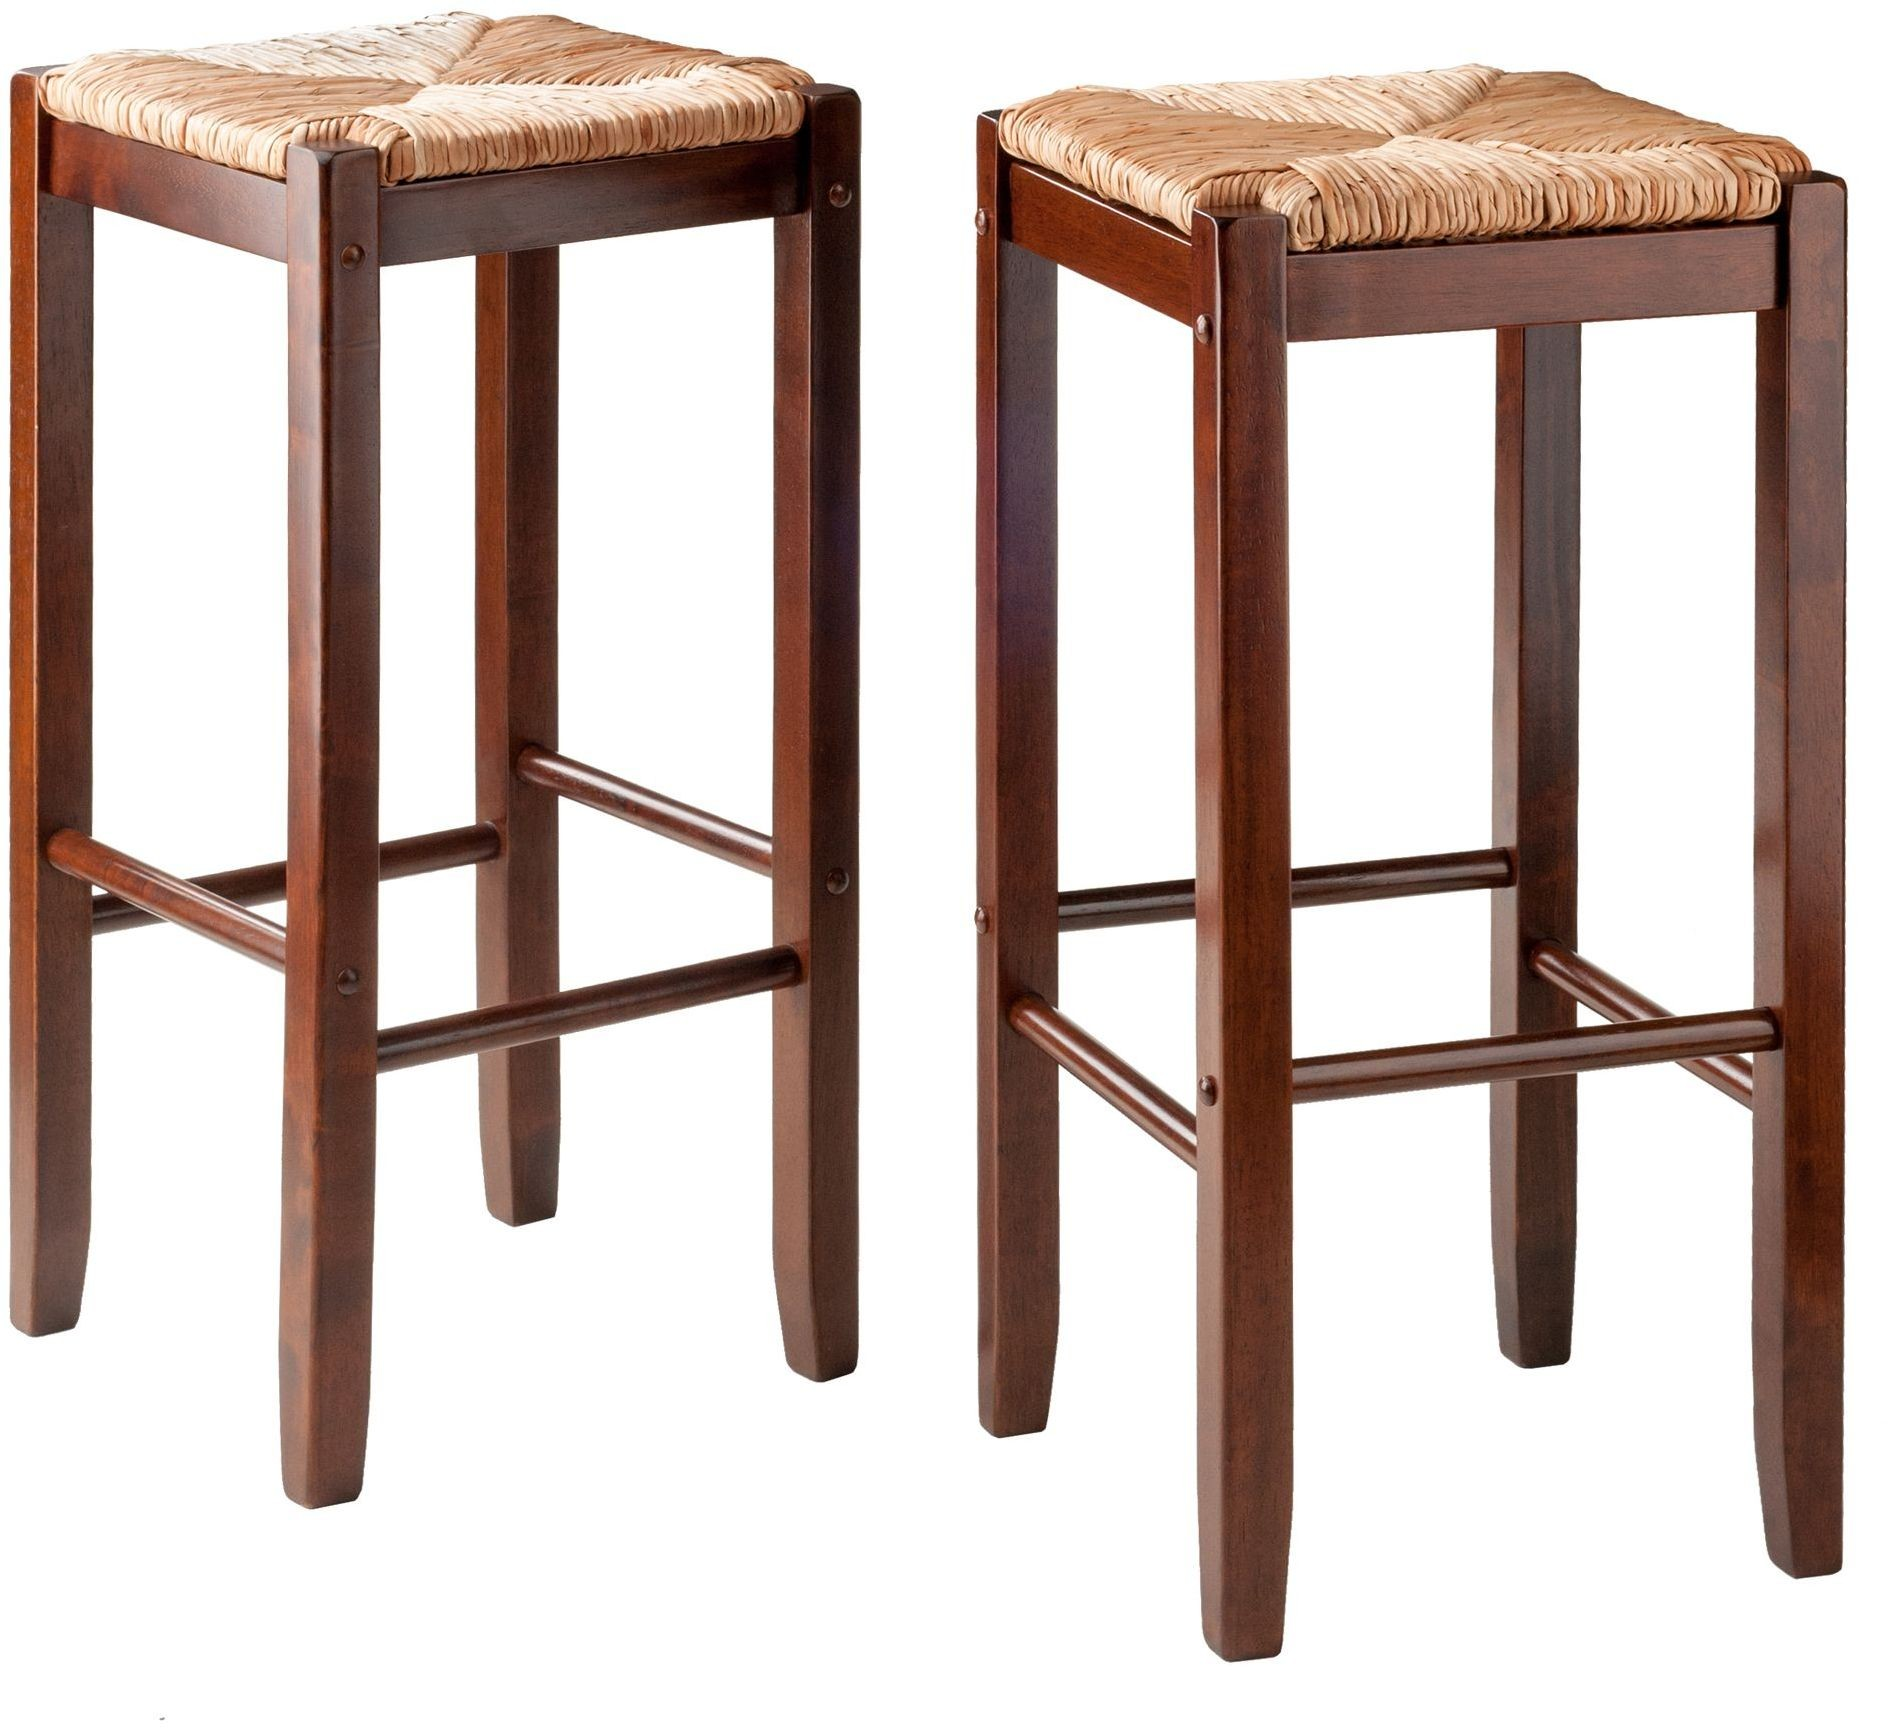 Kaden Walnut Rush Seat Bar Stool Set Of 2 From Winsomewood